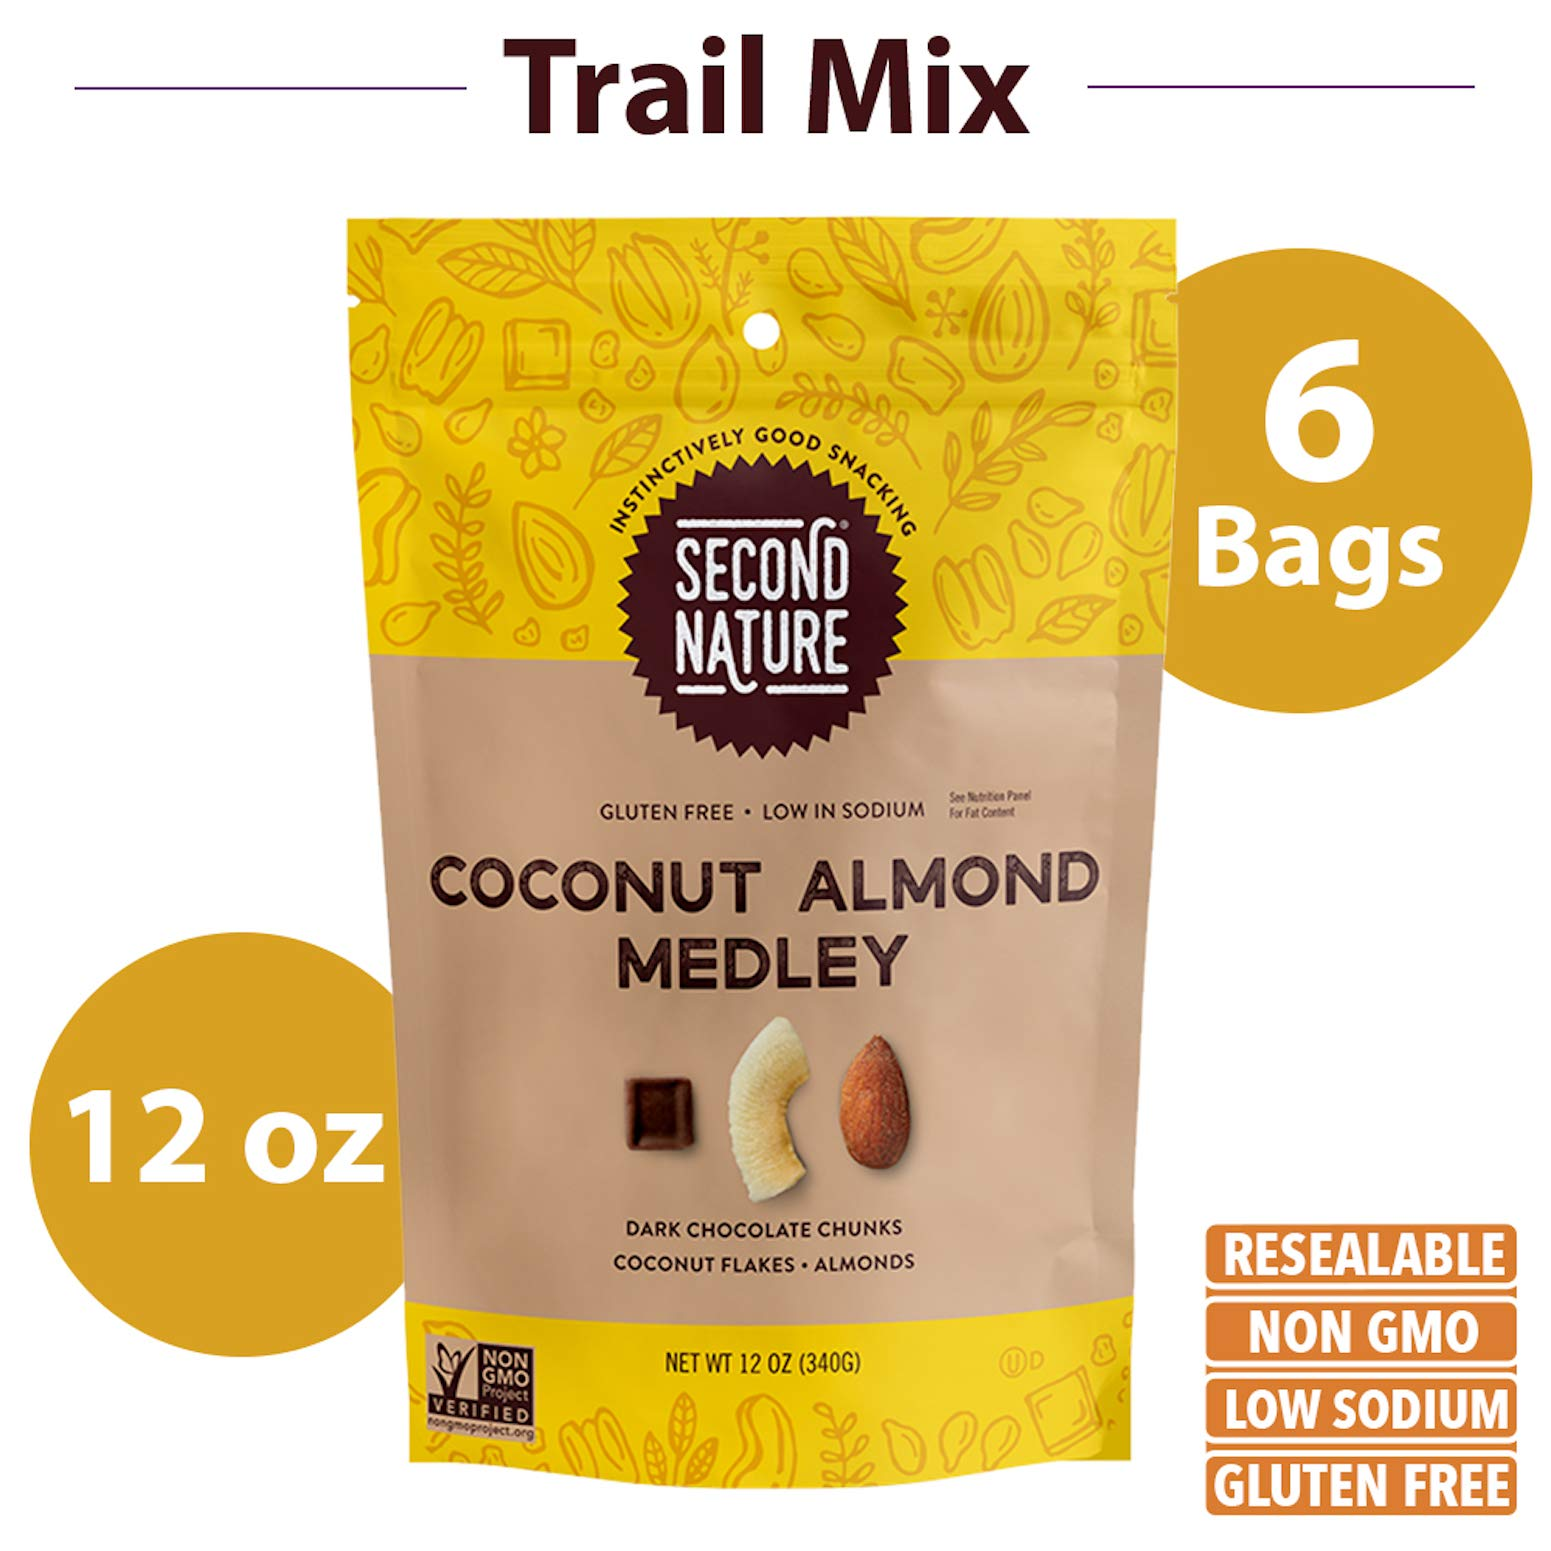 Second Nature Coconut Almond Medley Trail Mix - Healthy Nuts Snack - 12 oz Resealable Pouch (Pack of 6) by Second Nature